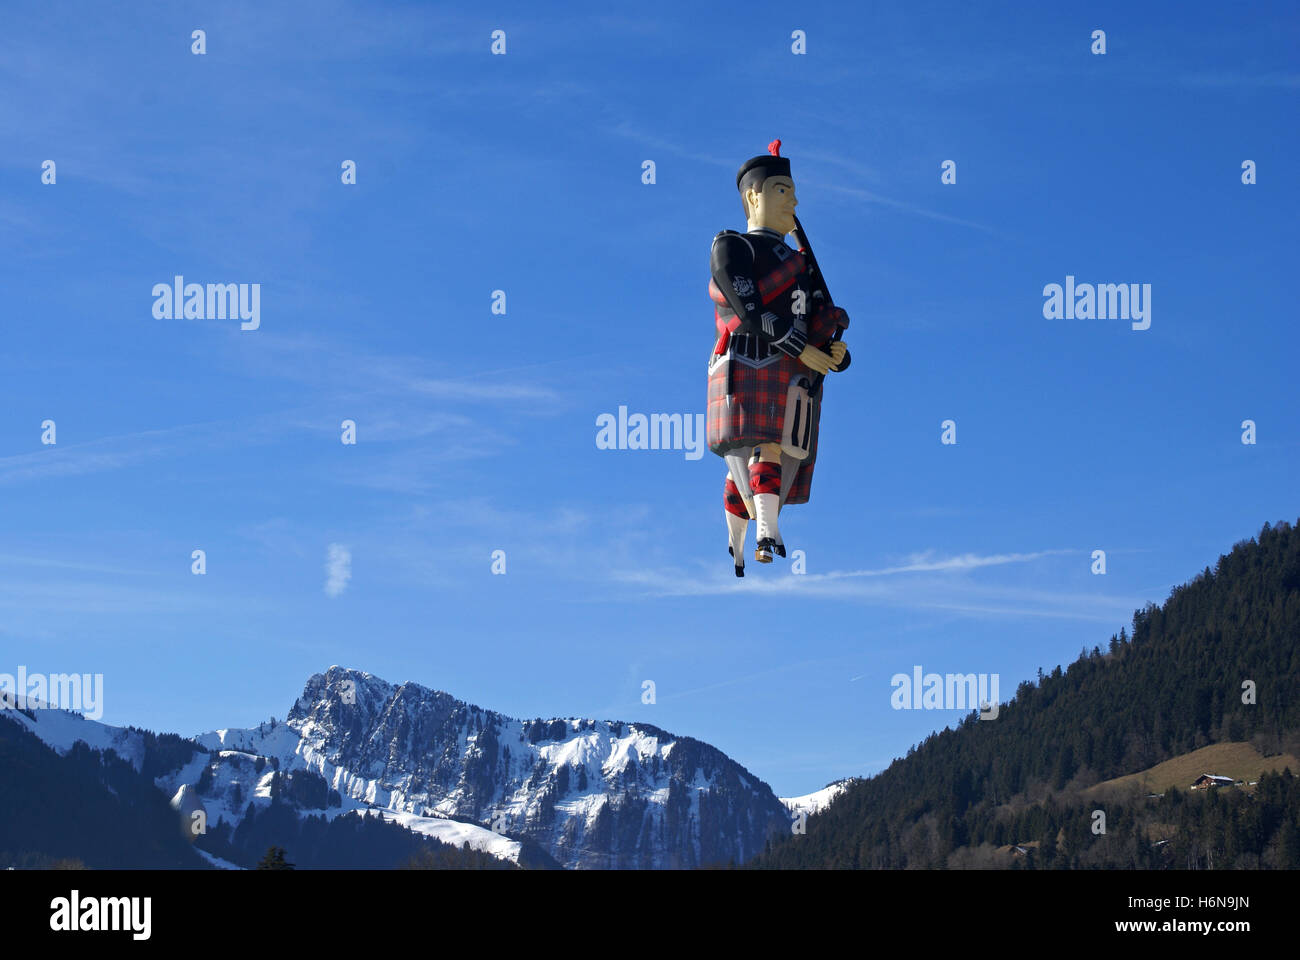 a scot in the alps - Stock Image